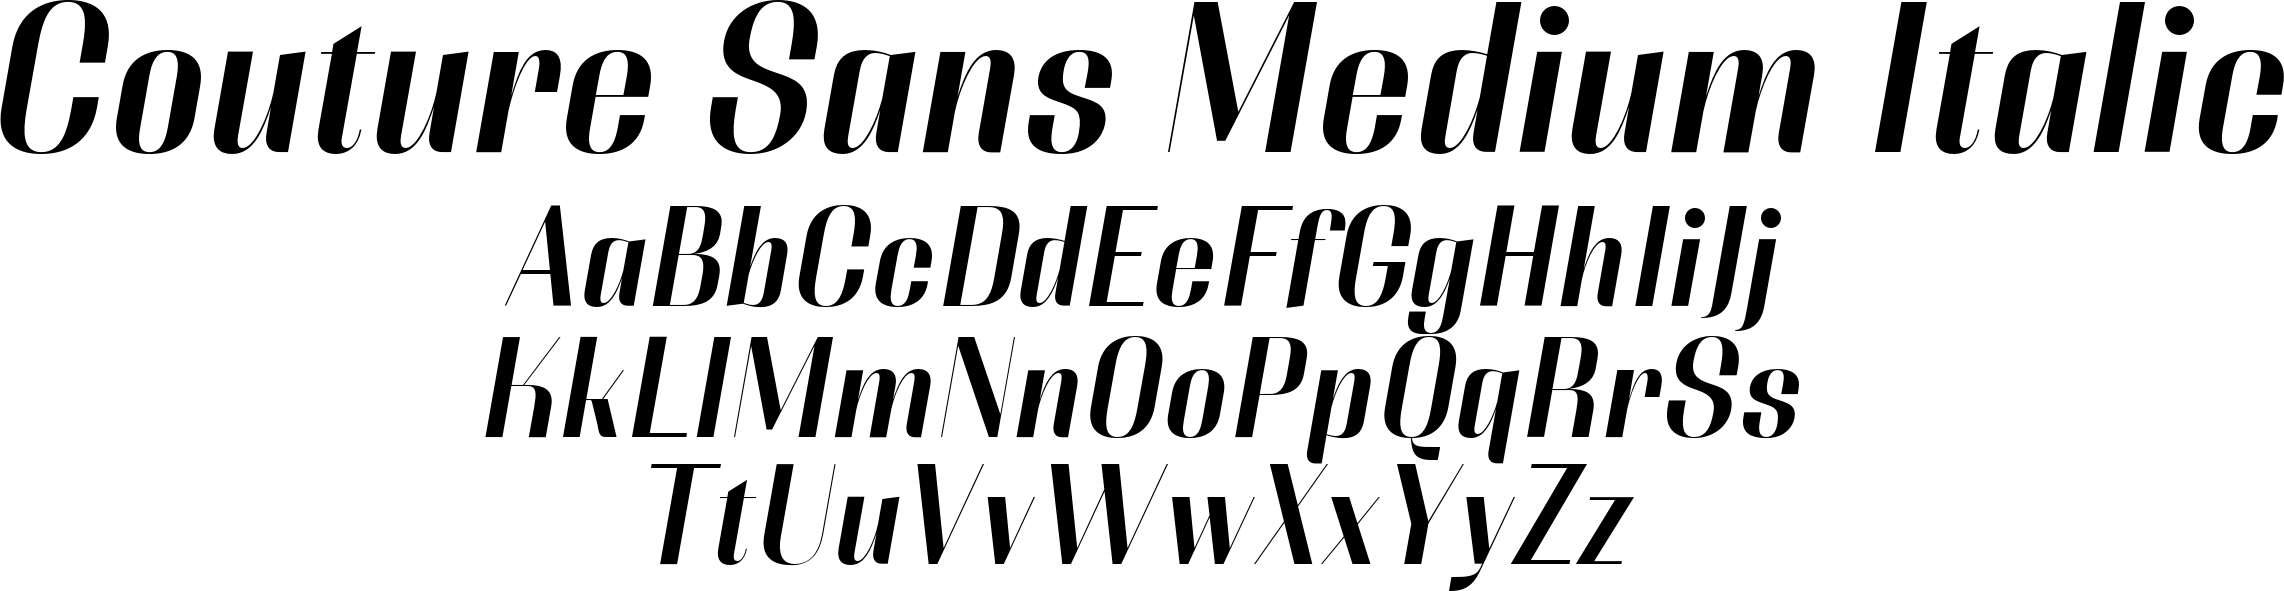 Couture Sans Medium Italic